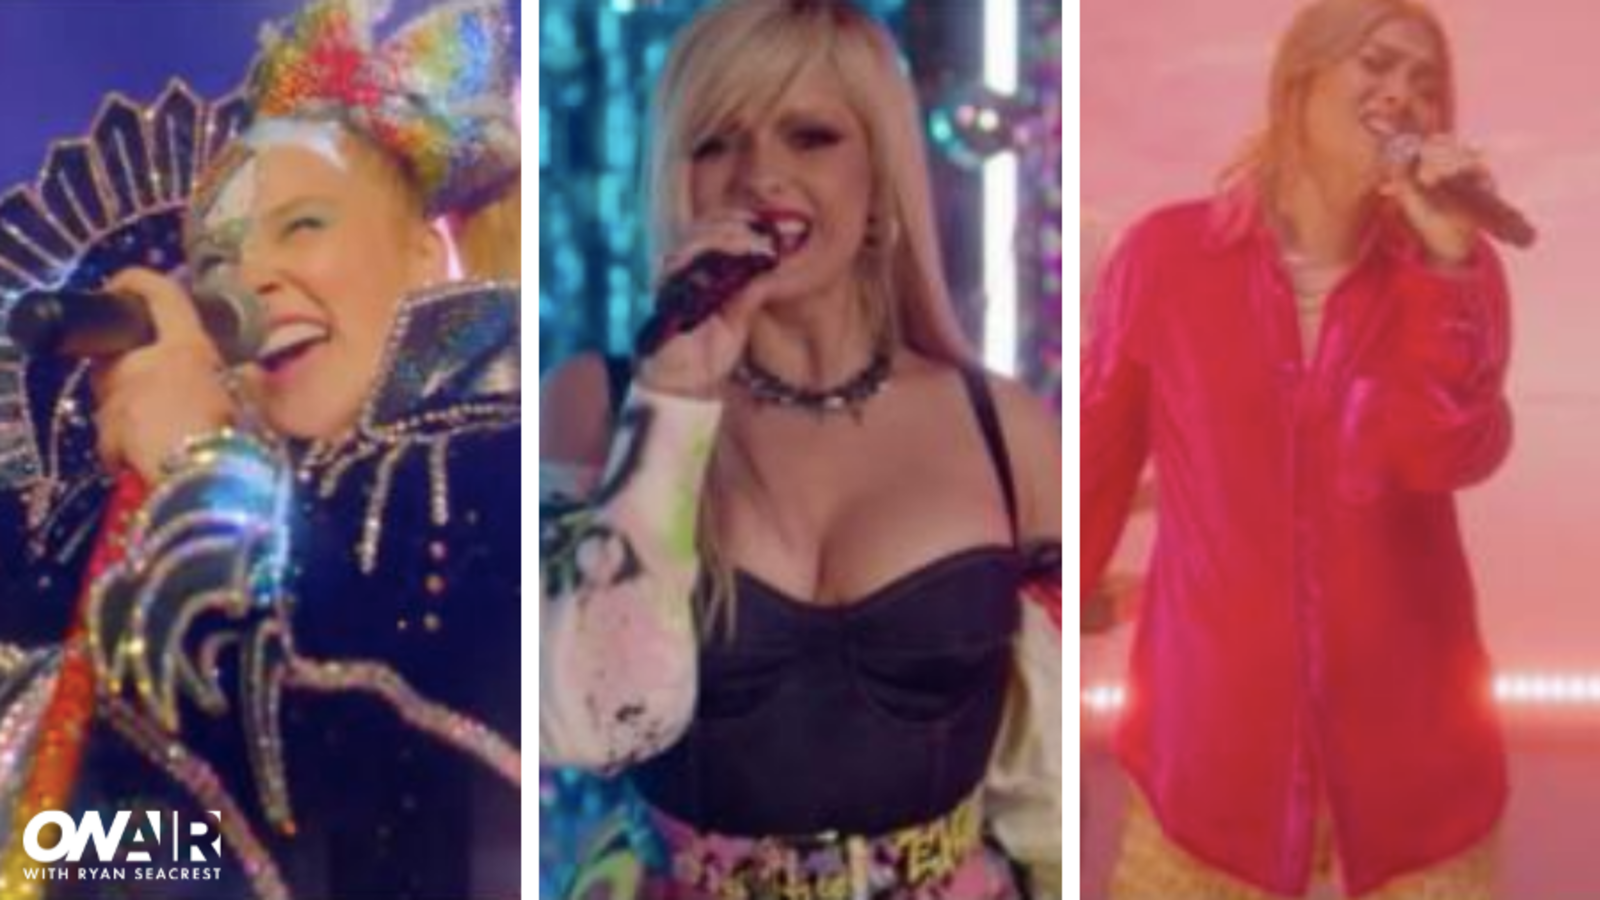 The Top 3 Looks From iHeartRadio's Can't Cancel Pride 2021